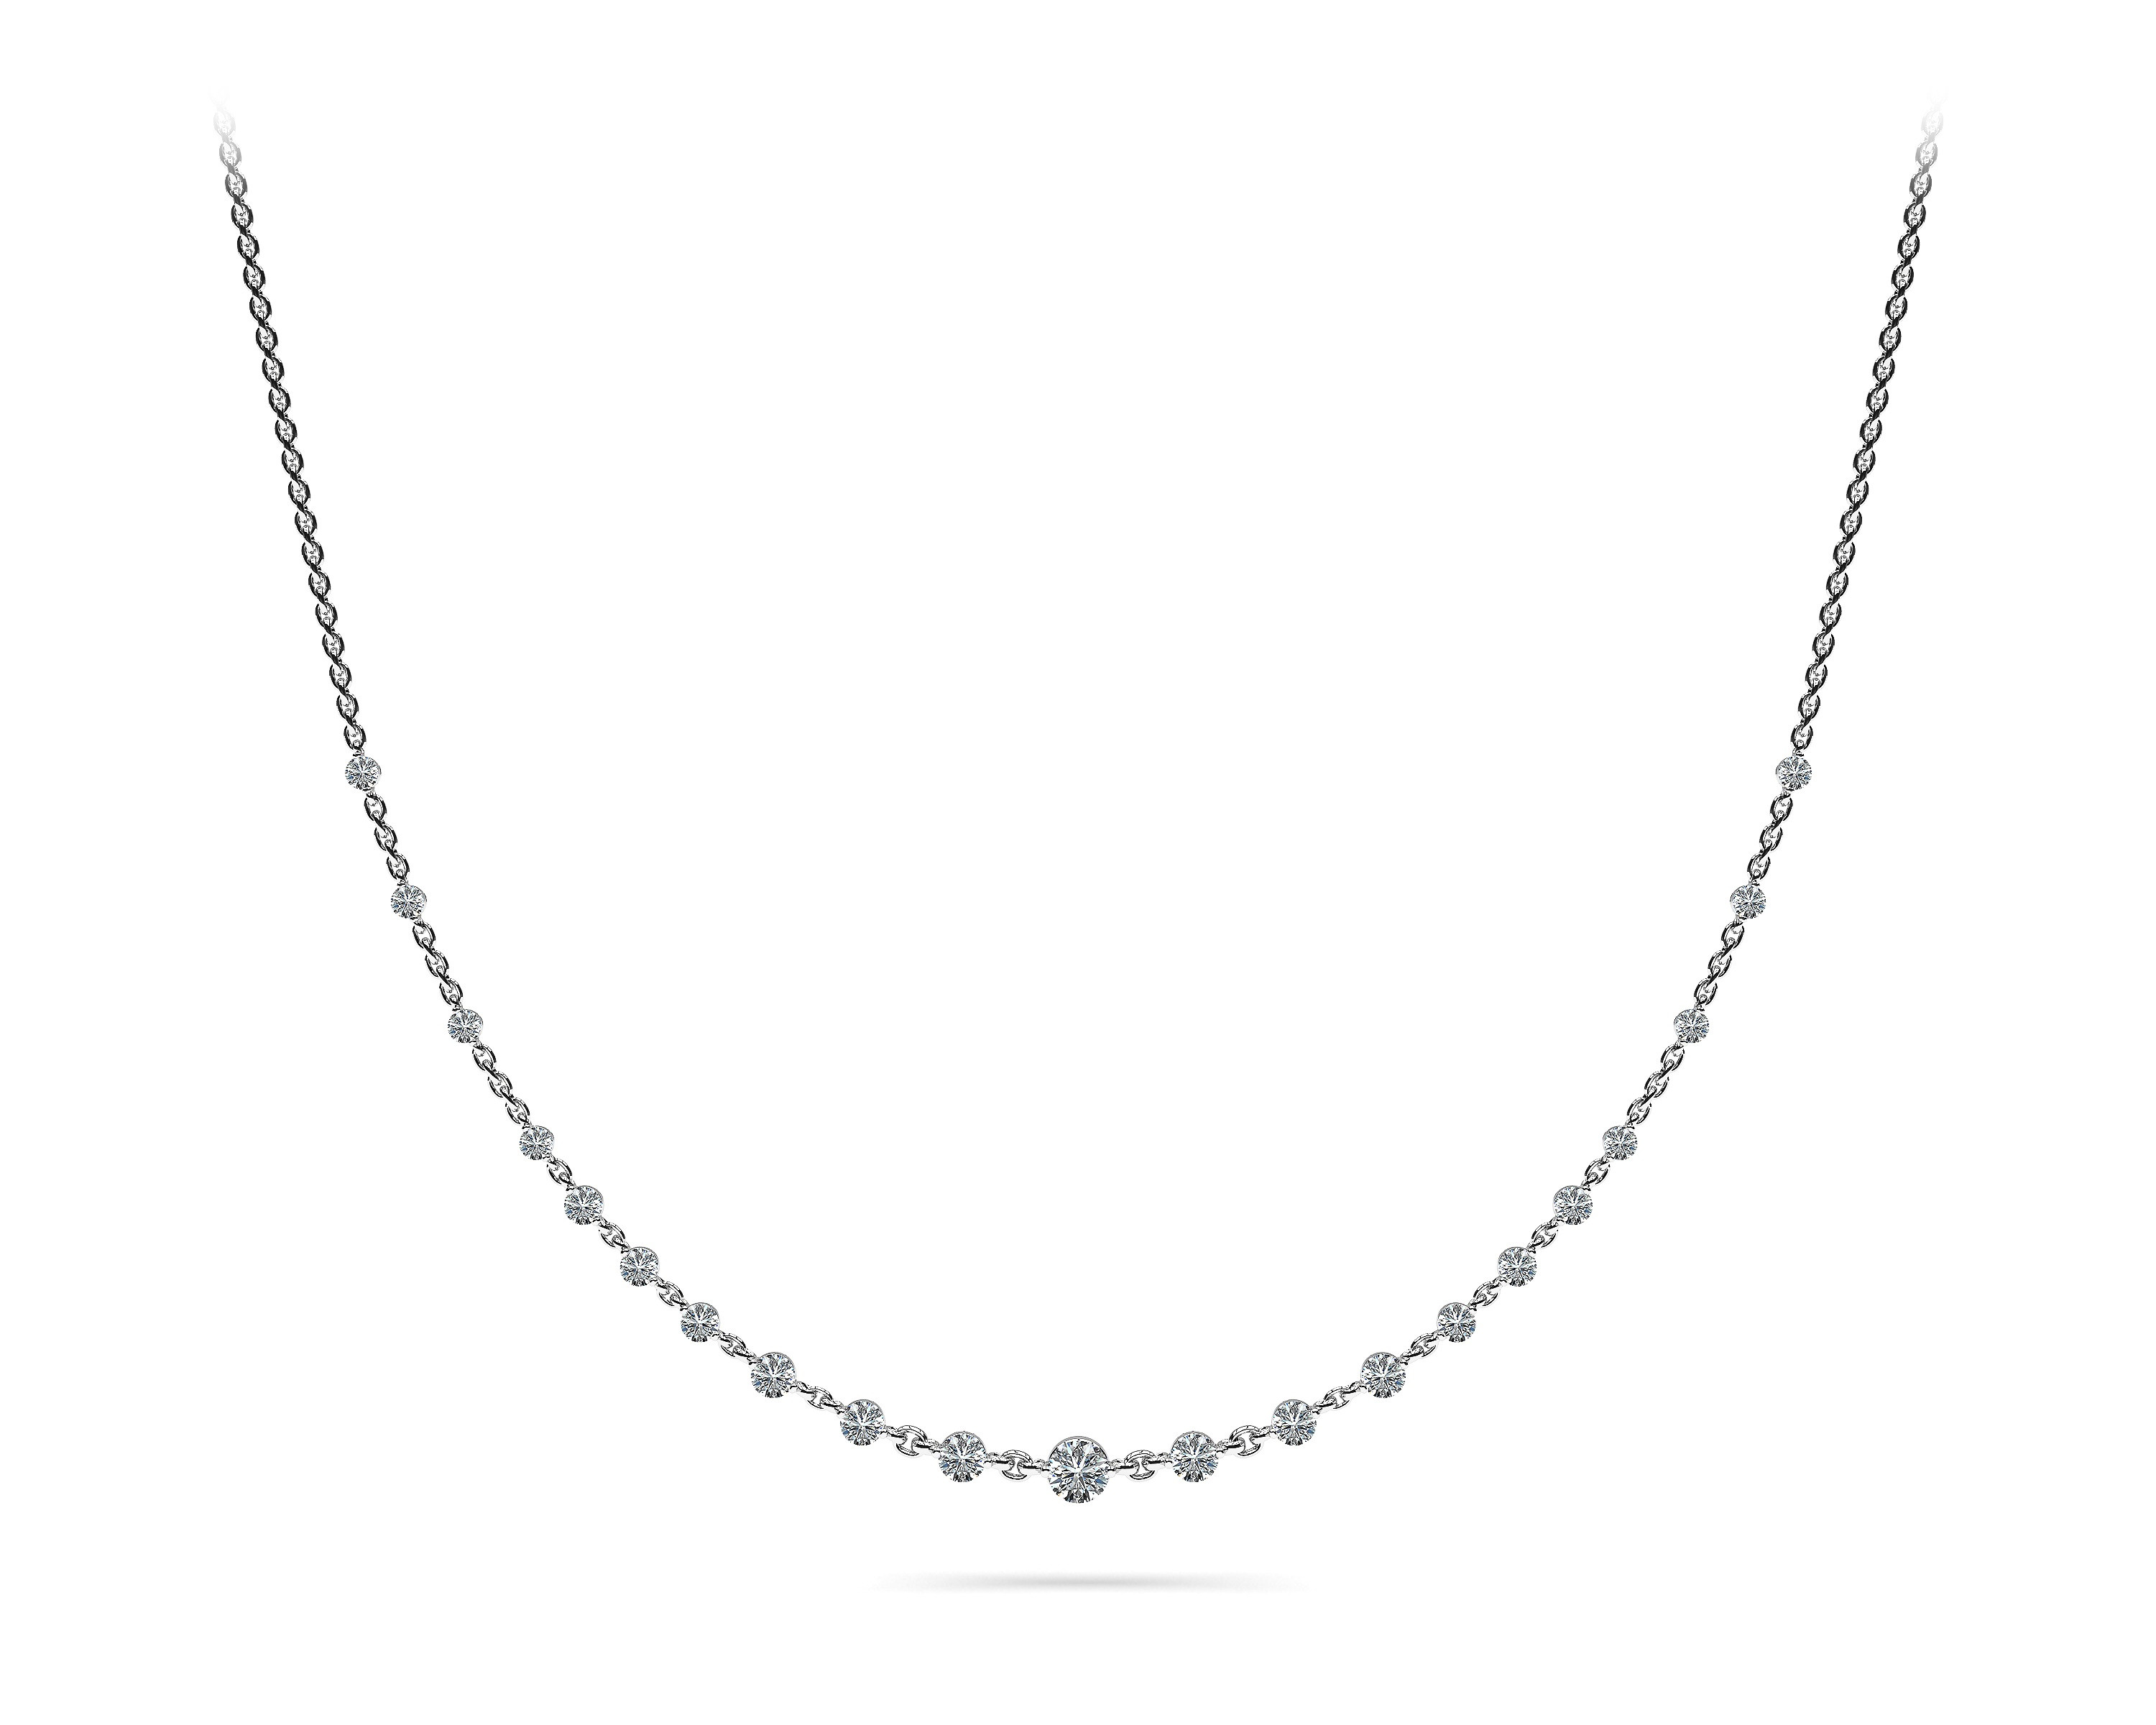 TWO PRONG CABLE LINK NECKLACE